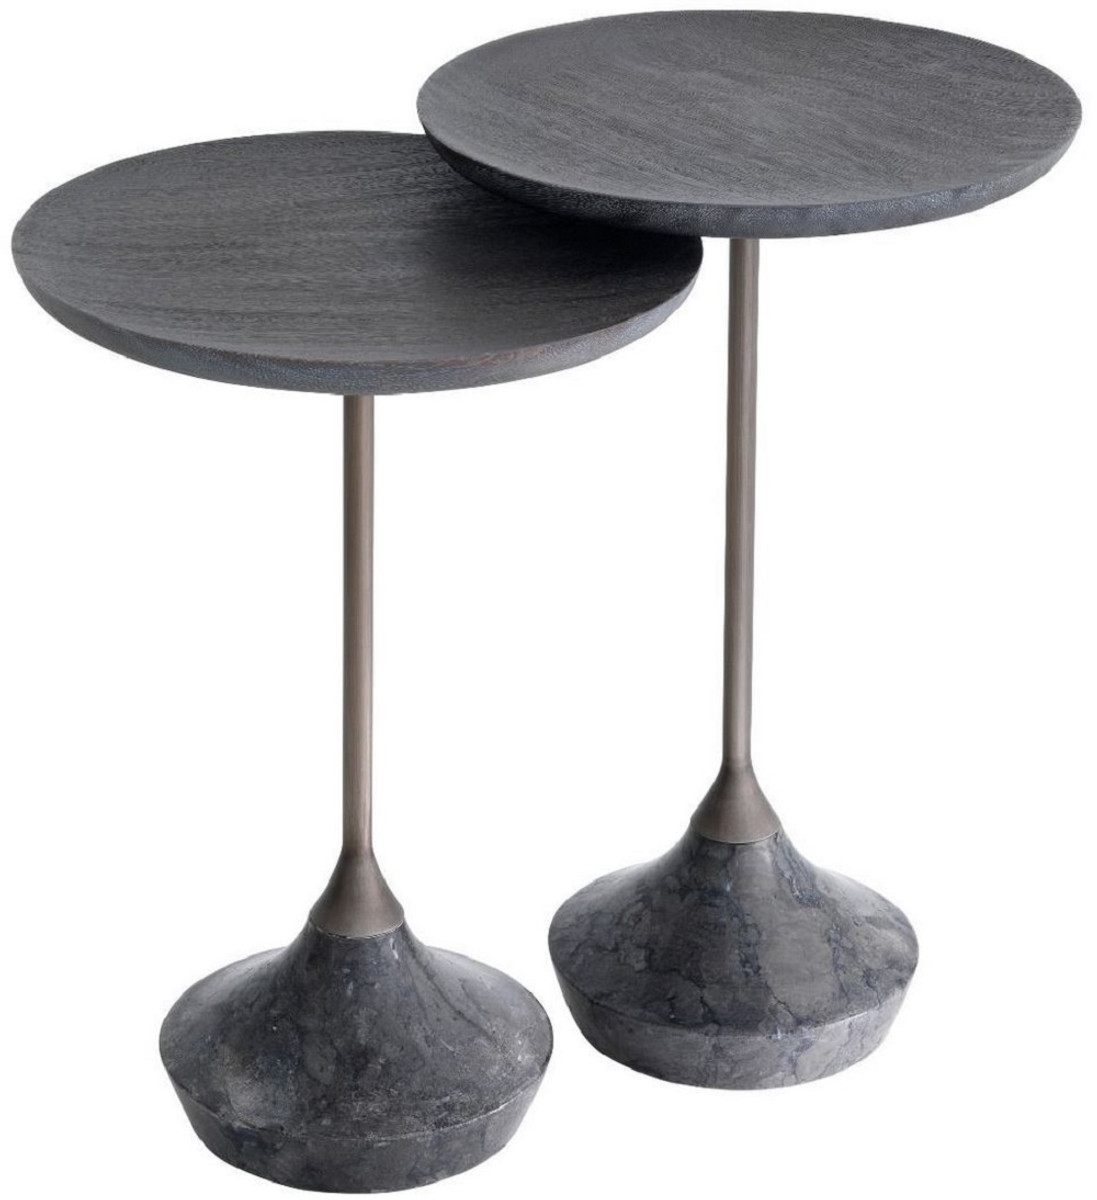 casa padrino luxury side table set gray bronze o 35 cm round marble tables luxury living room furniture